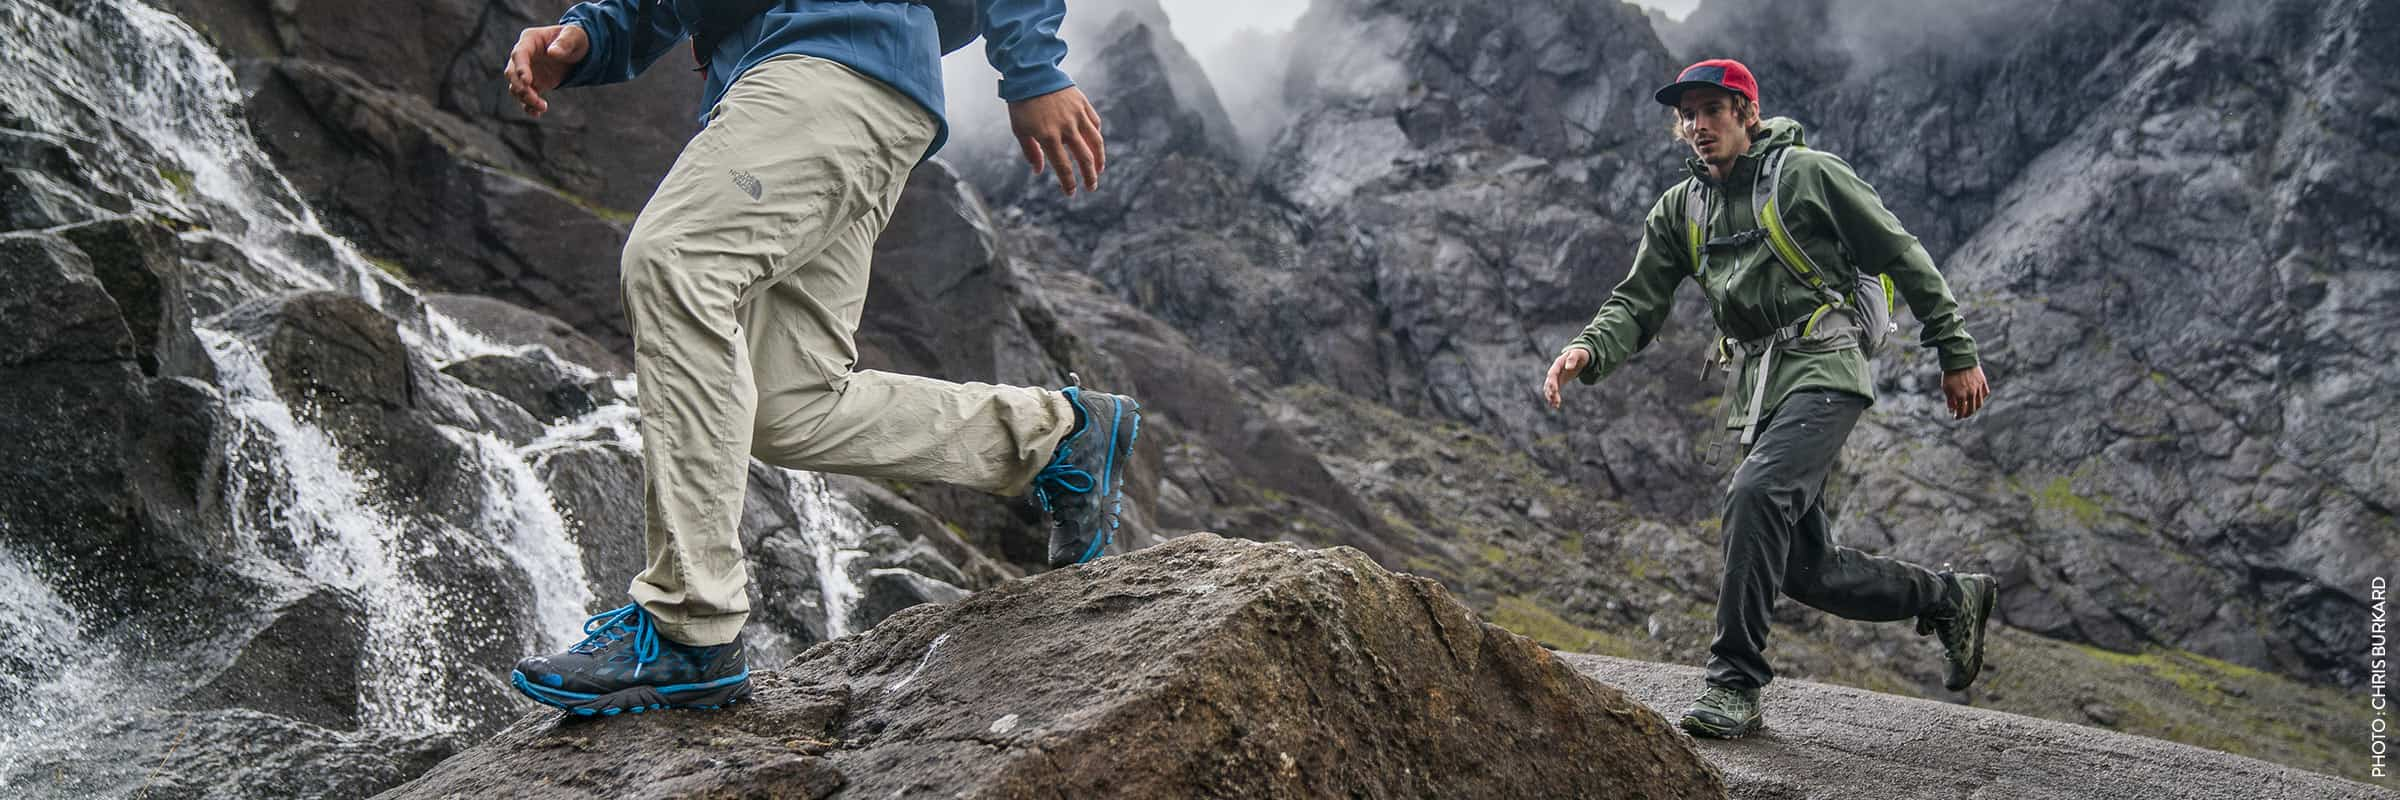 Finding the Right Hiking Boots or Shoes